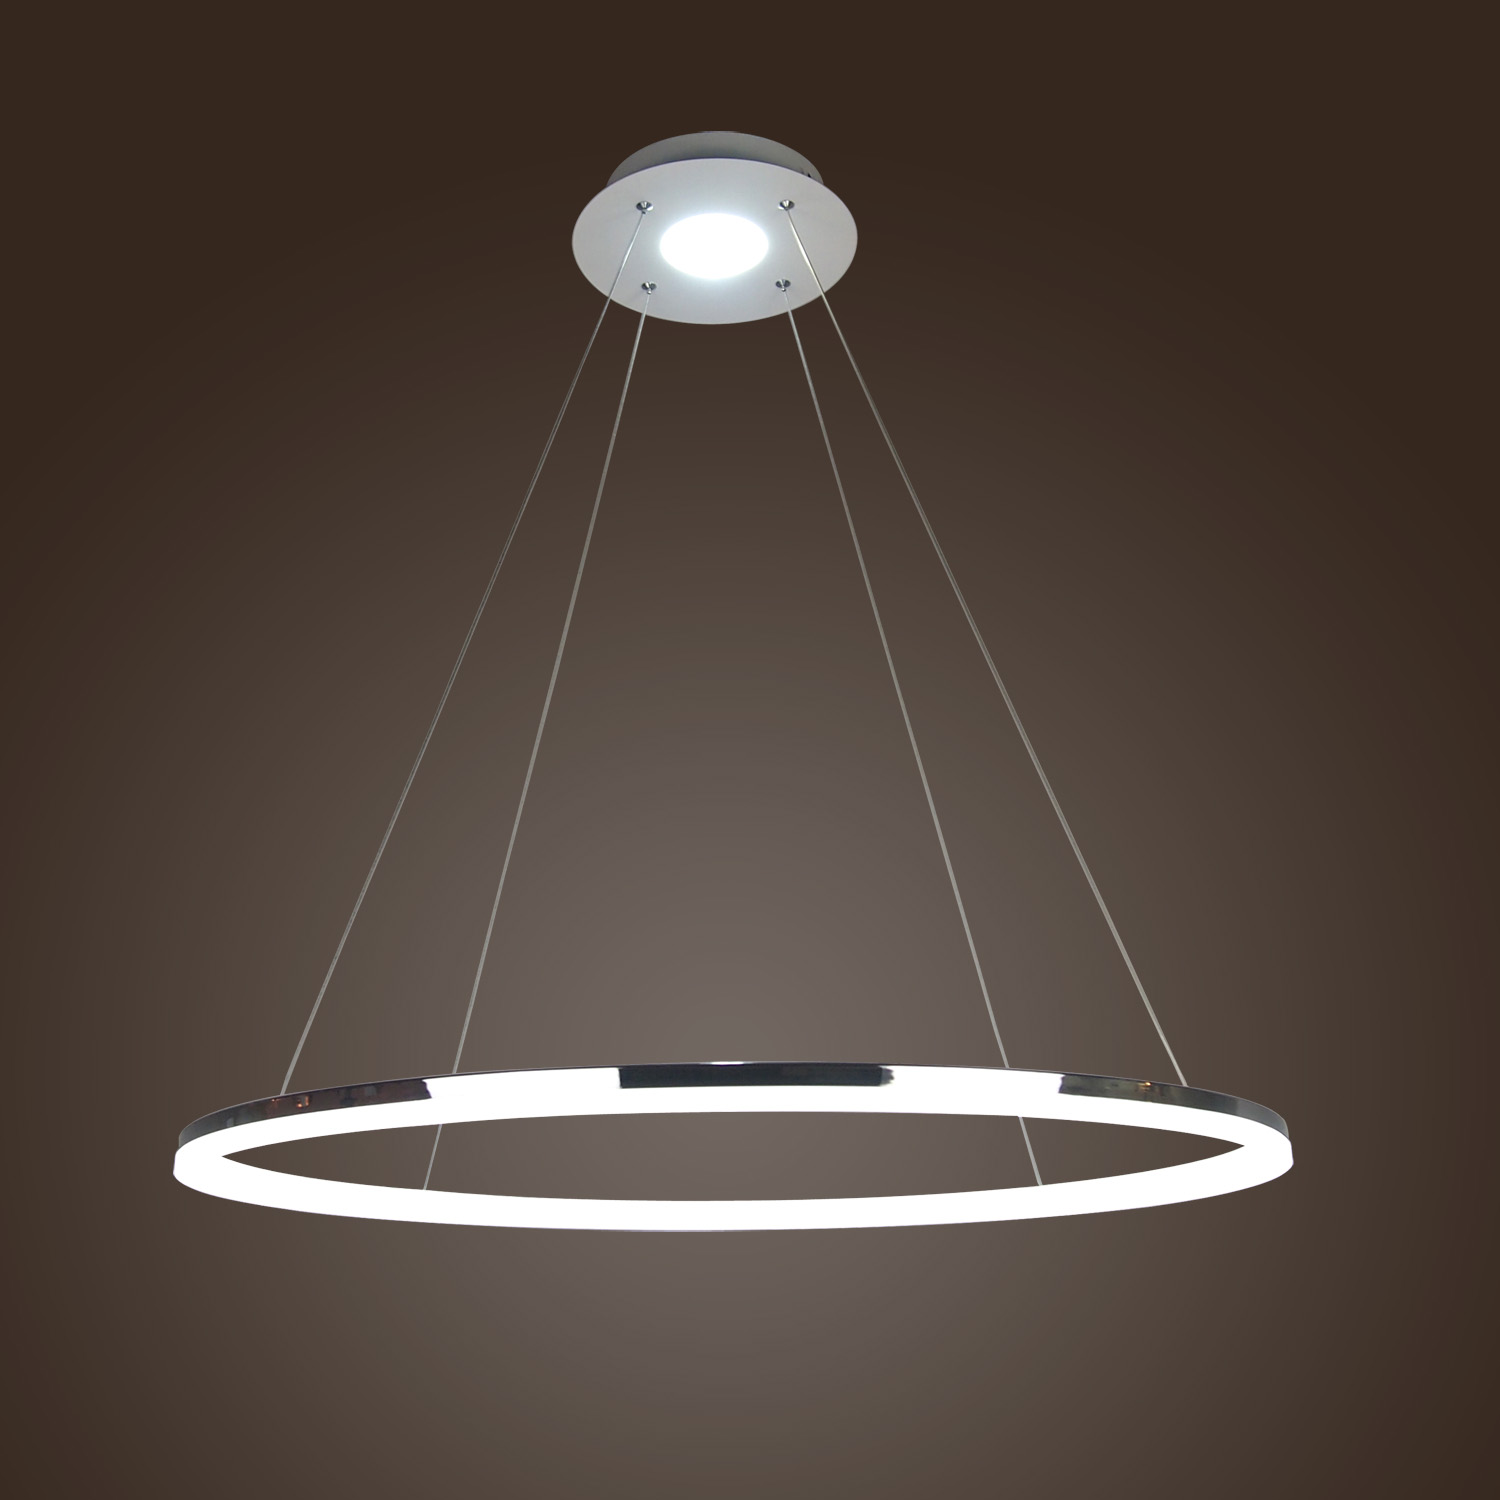 Led Light Fixture Pictures: Modern LED Acrylic Pendant Light Living LED Ring Lights